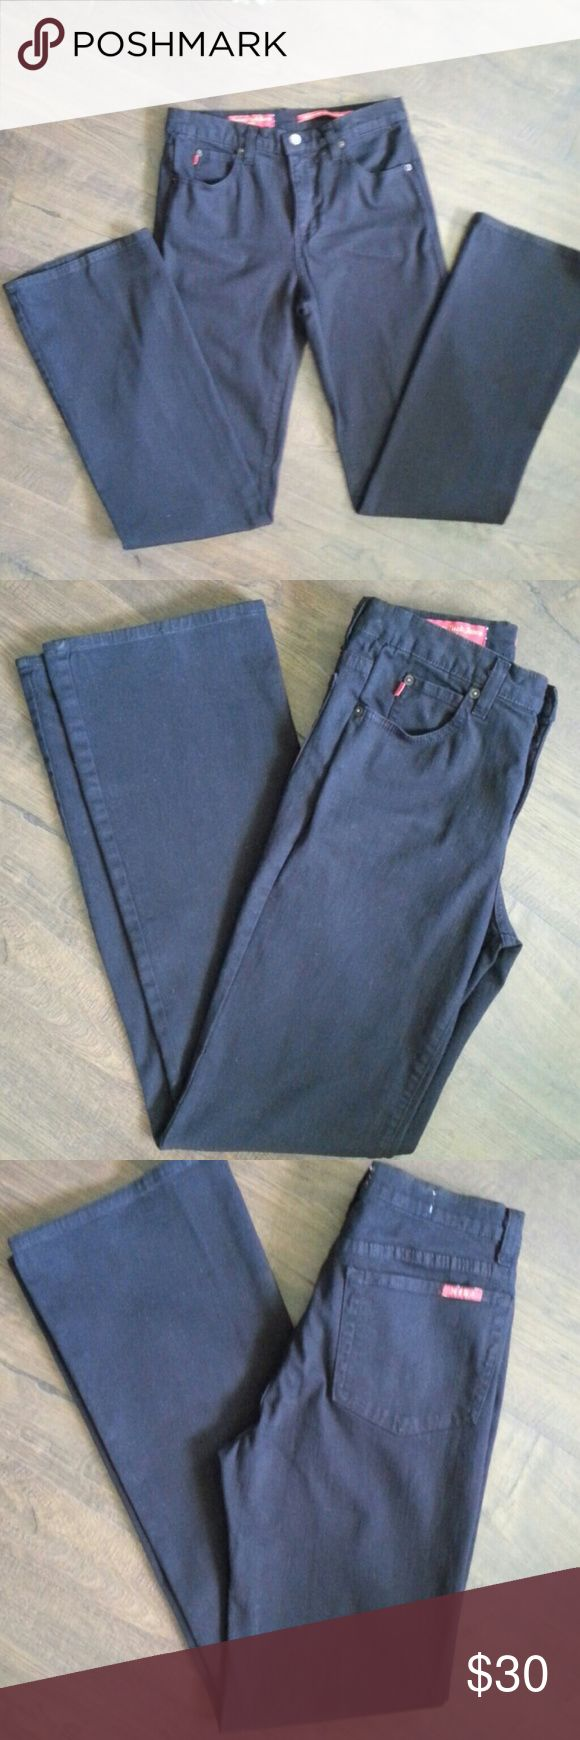 """NYDJ Jeans Tummy Tuck Bootcut Black Sz 6 Not Your Daughters Jeans Tummy Tuck Black Bootcut Sz 6 measurements waist 29"""", rise 8-1/2"""", hip 36"""", inseam 33"""", leg opening at hem 19-1/2"""". Black fabric 97% cotton,  3% spandex. Pre owned,  please review pictures for condition and measurements for accurate fit. Thanks! Not Your Daughters Jeans Jeans Boot Cut"""